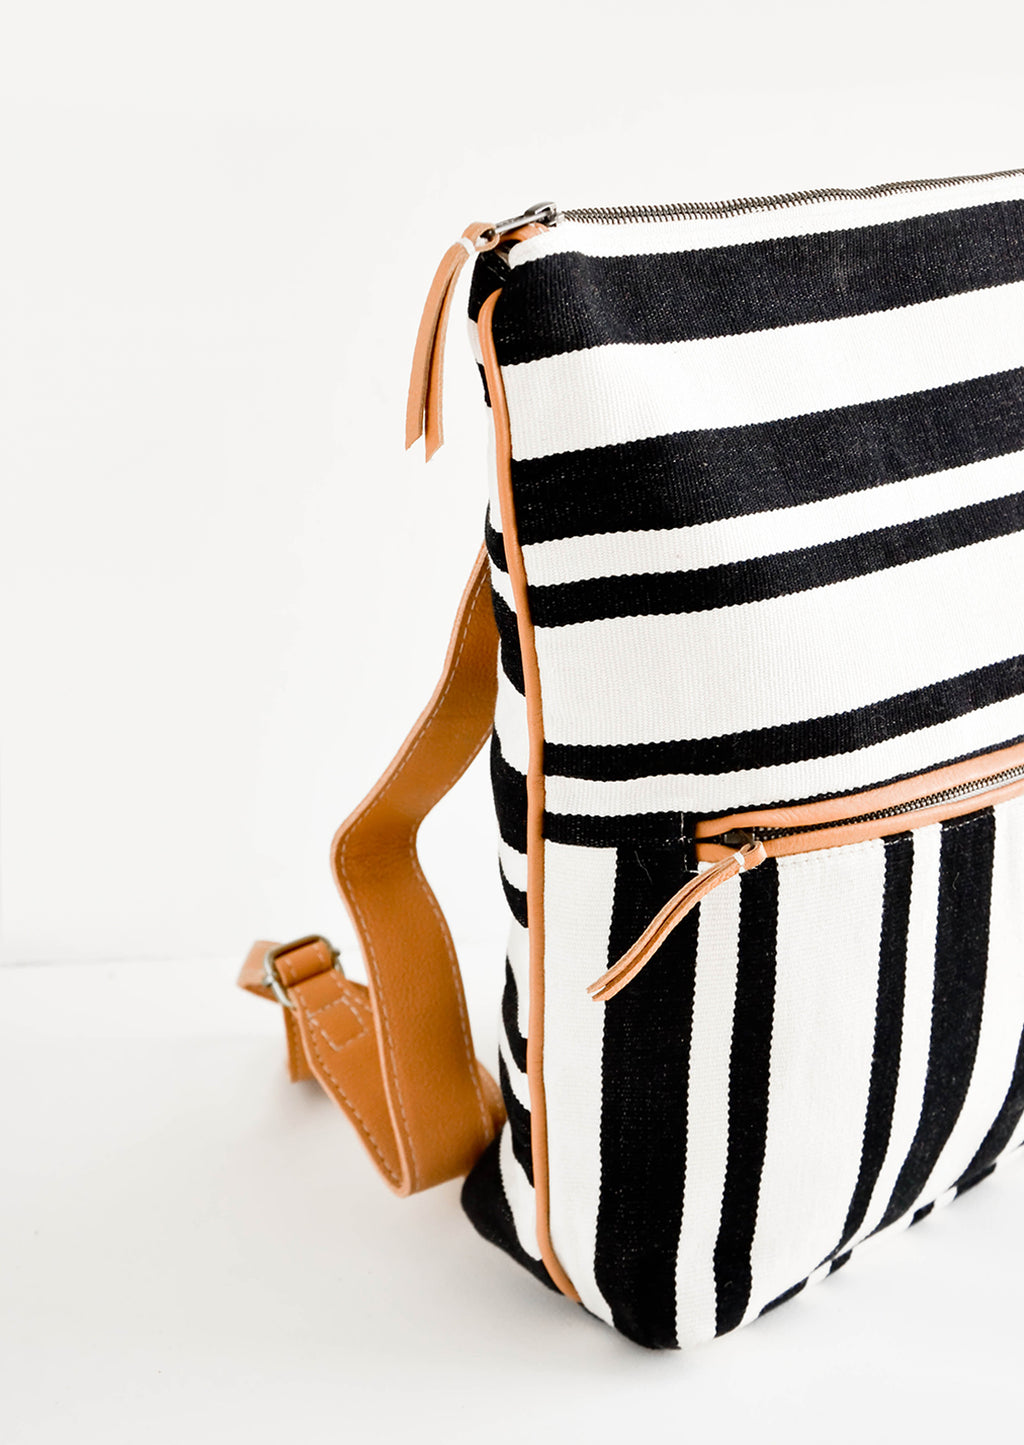 2: Fashion backpack in black and white striped cotton canvas with tan leather accents